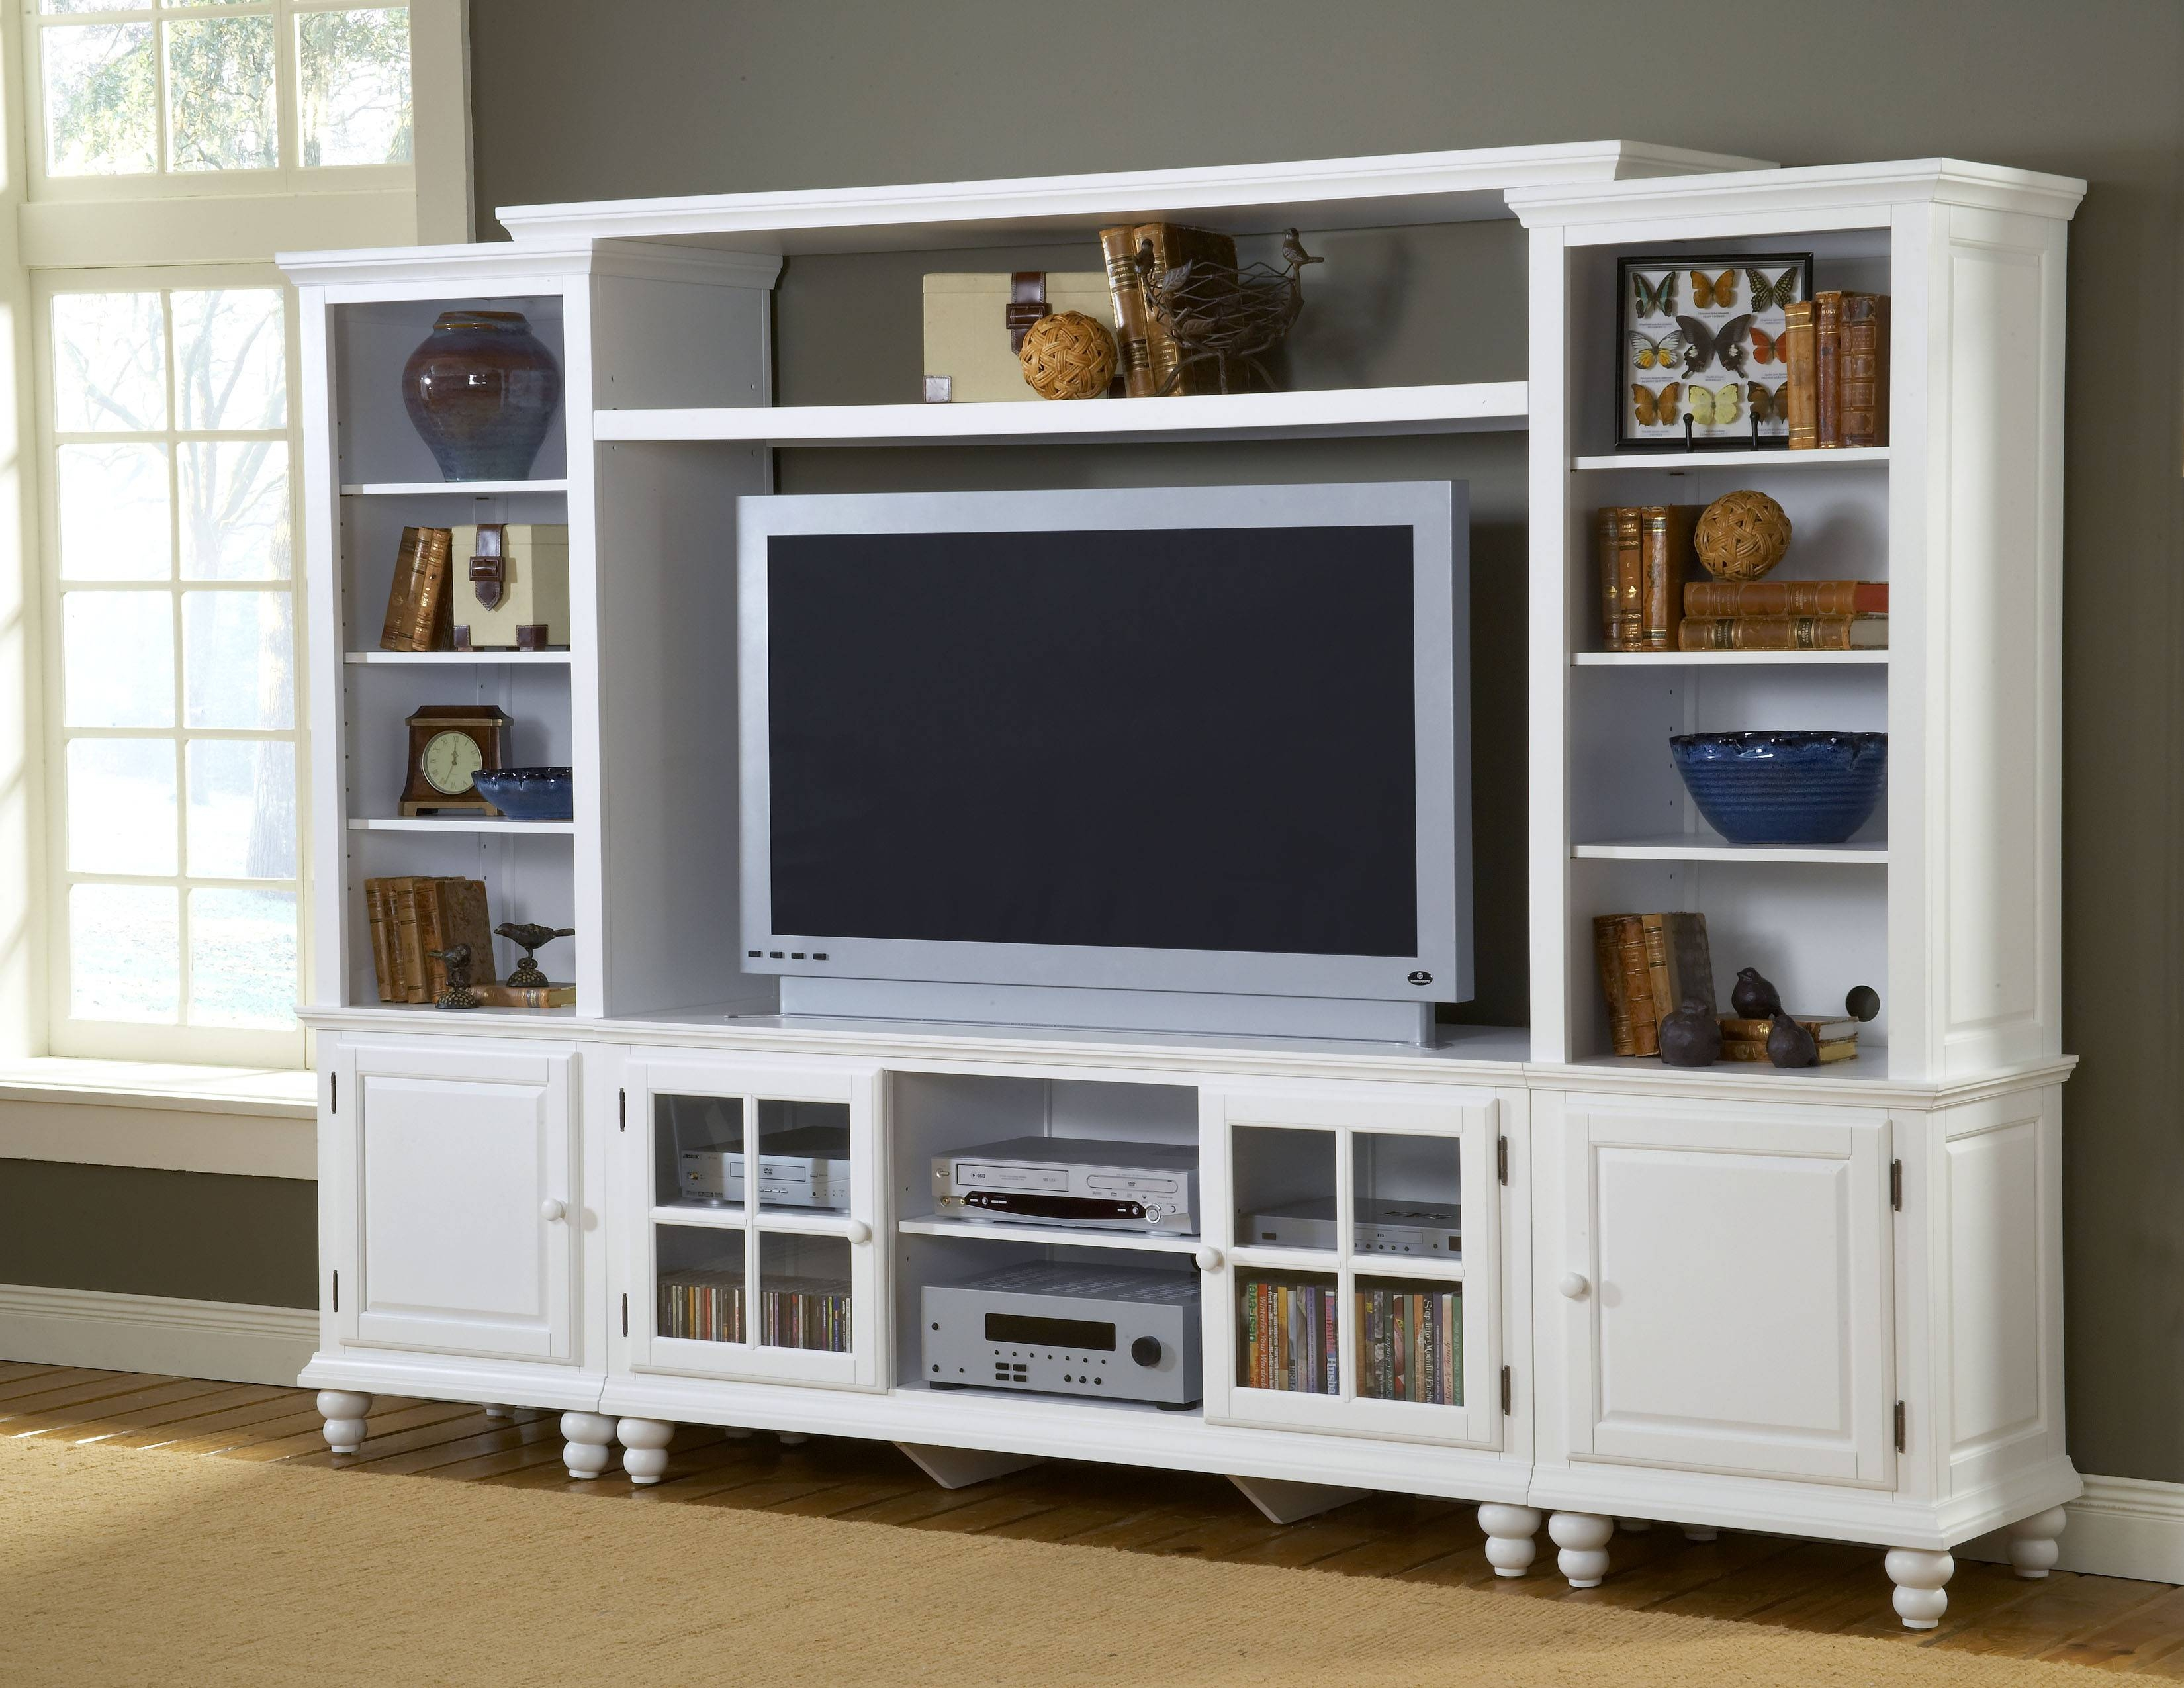 Contemporary Tv Wall Unit Designs 15 Best Tv Entertainment Wall Units